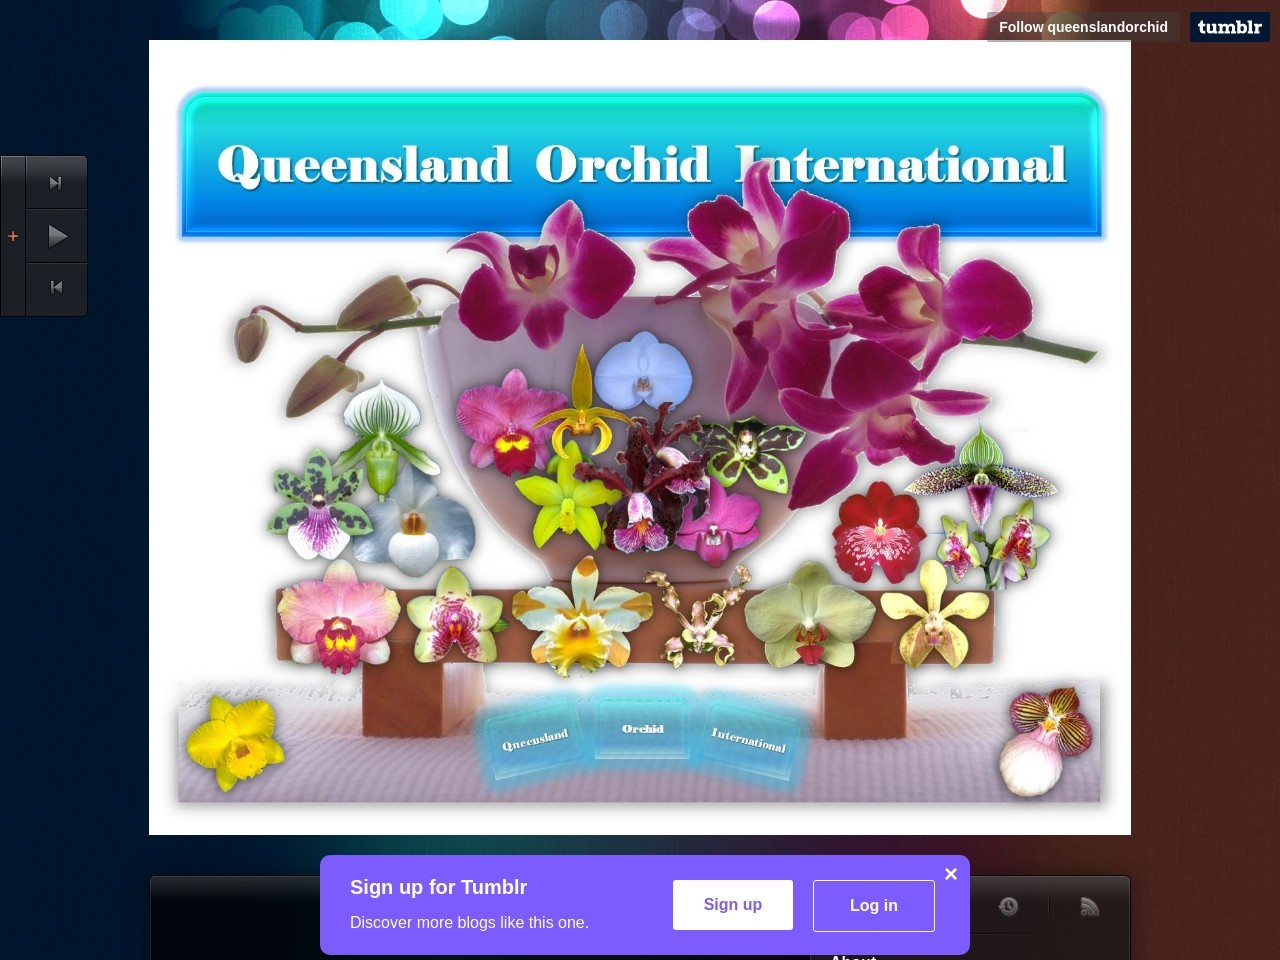 Queensland Orchid International on Tumblr